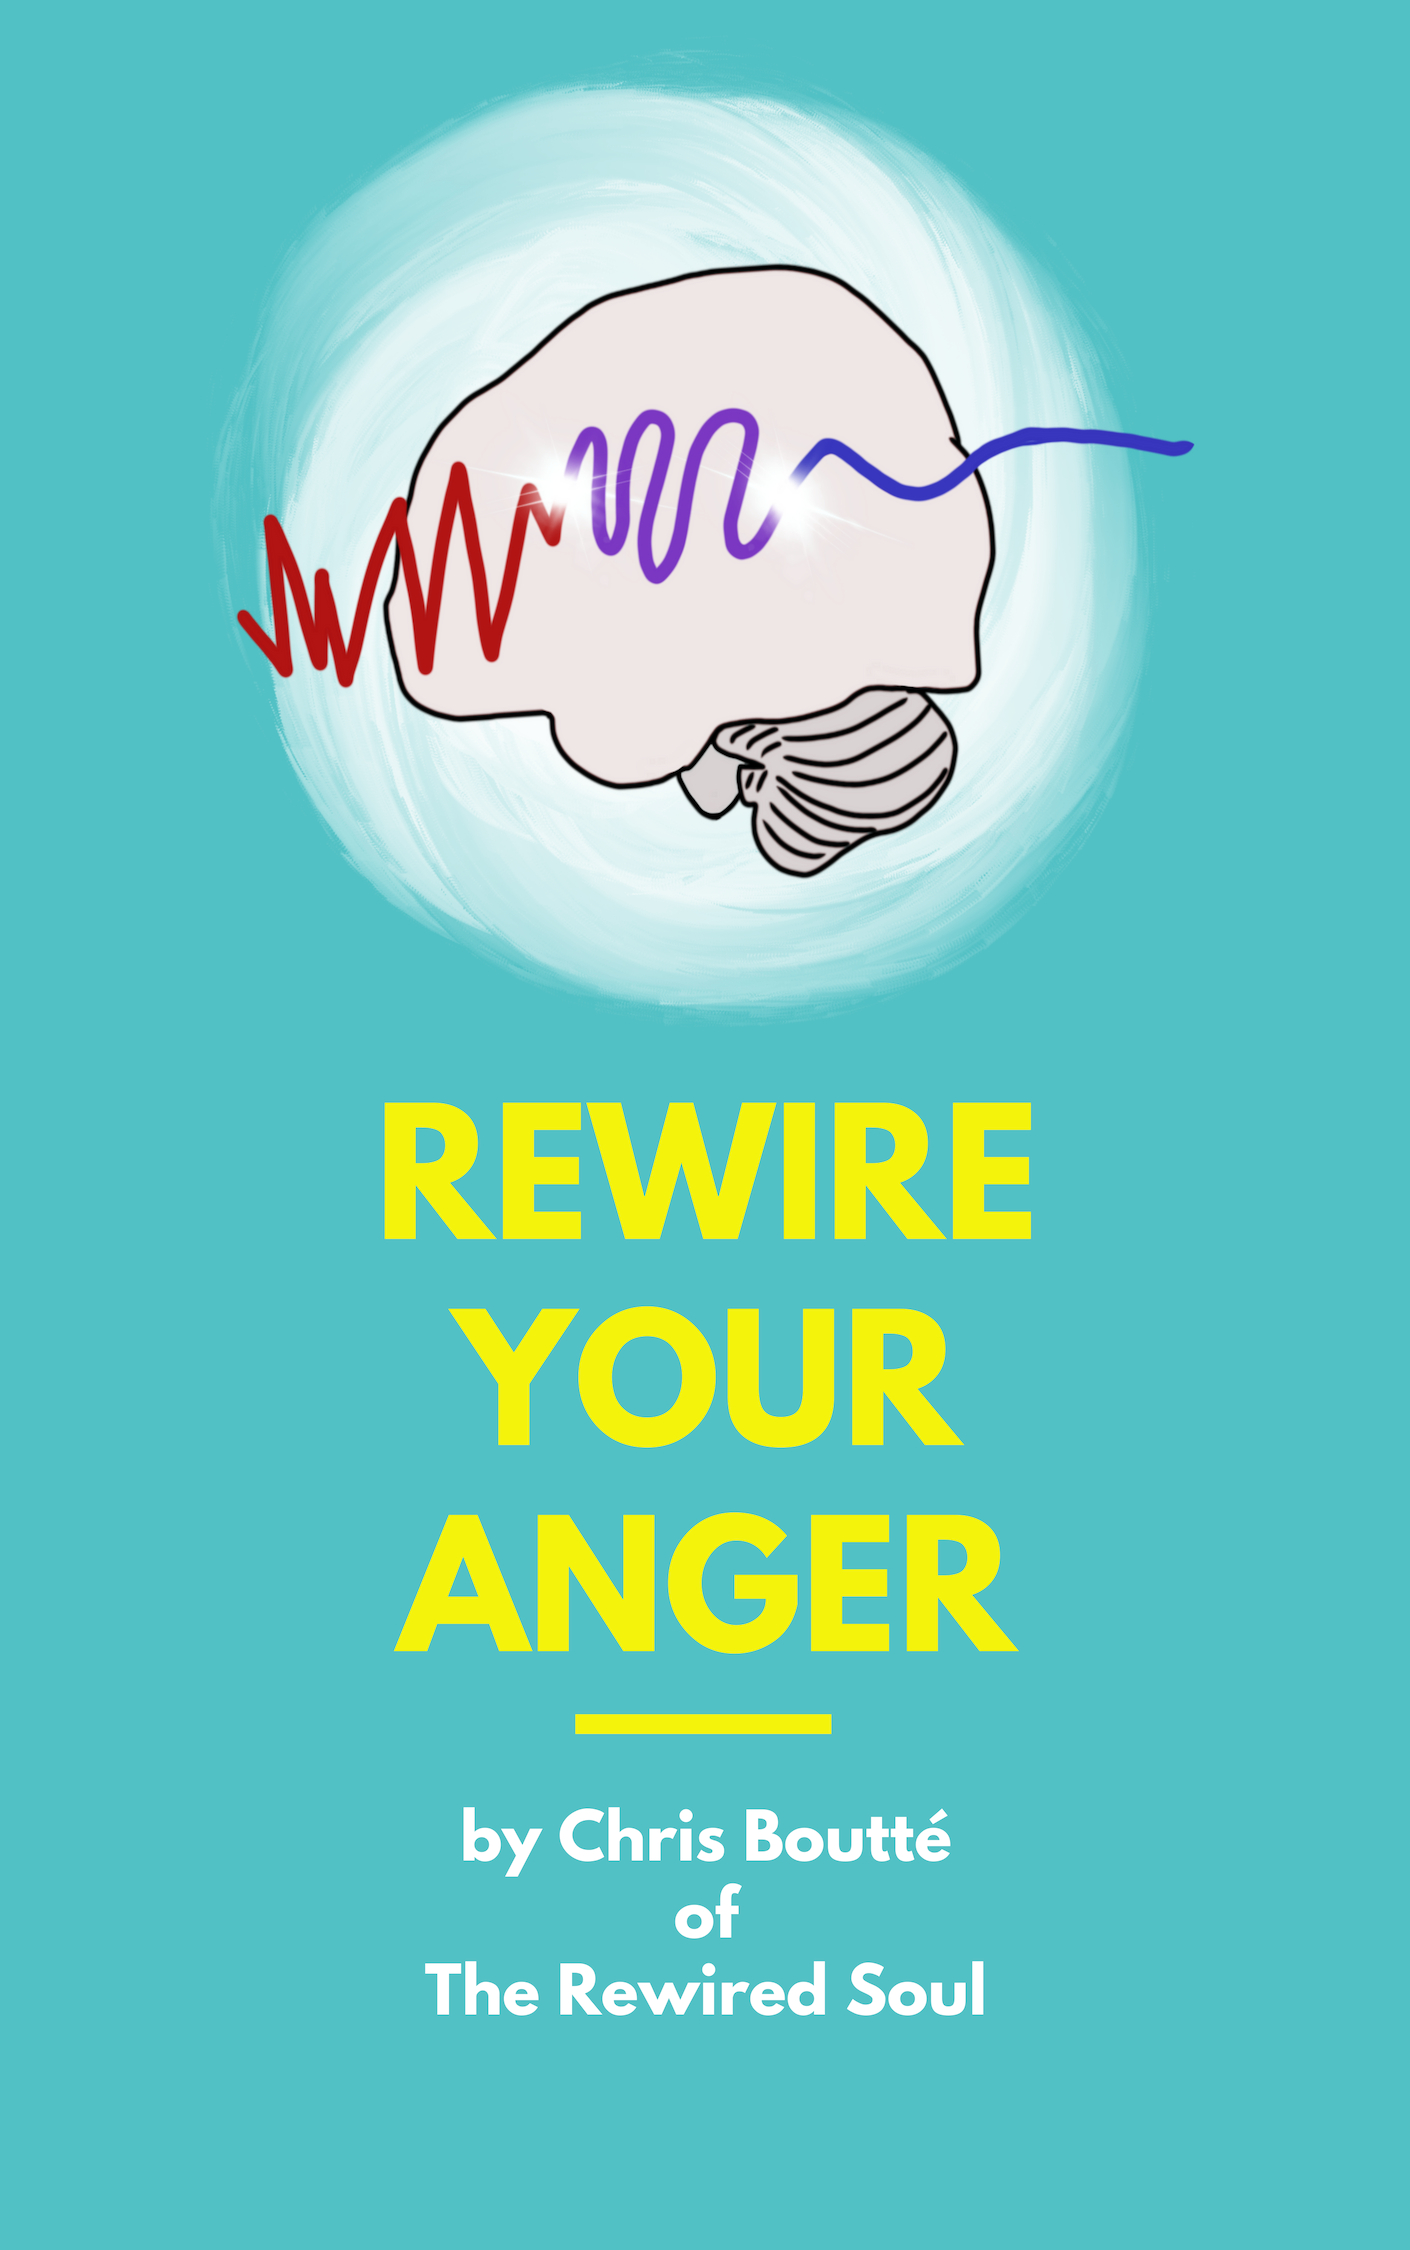 Rewire Your Anger.jpg